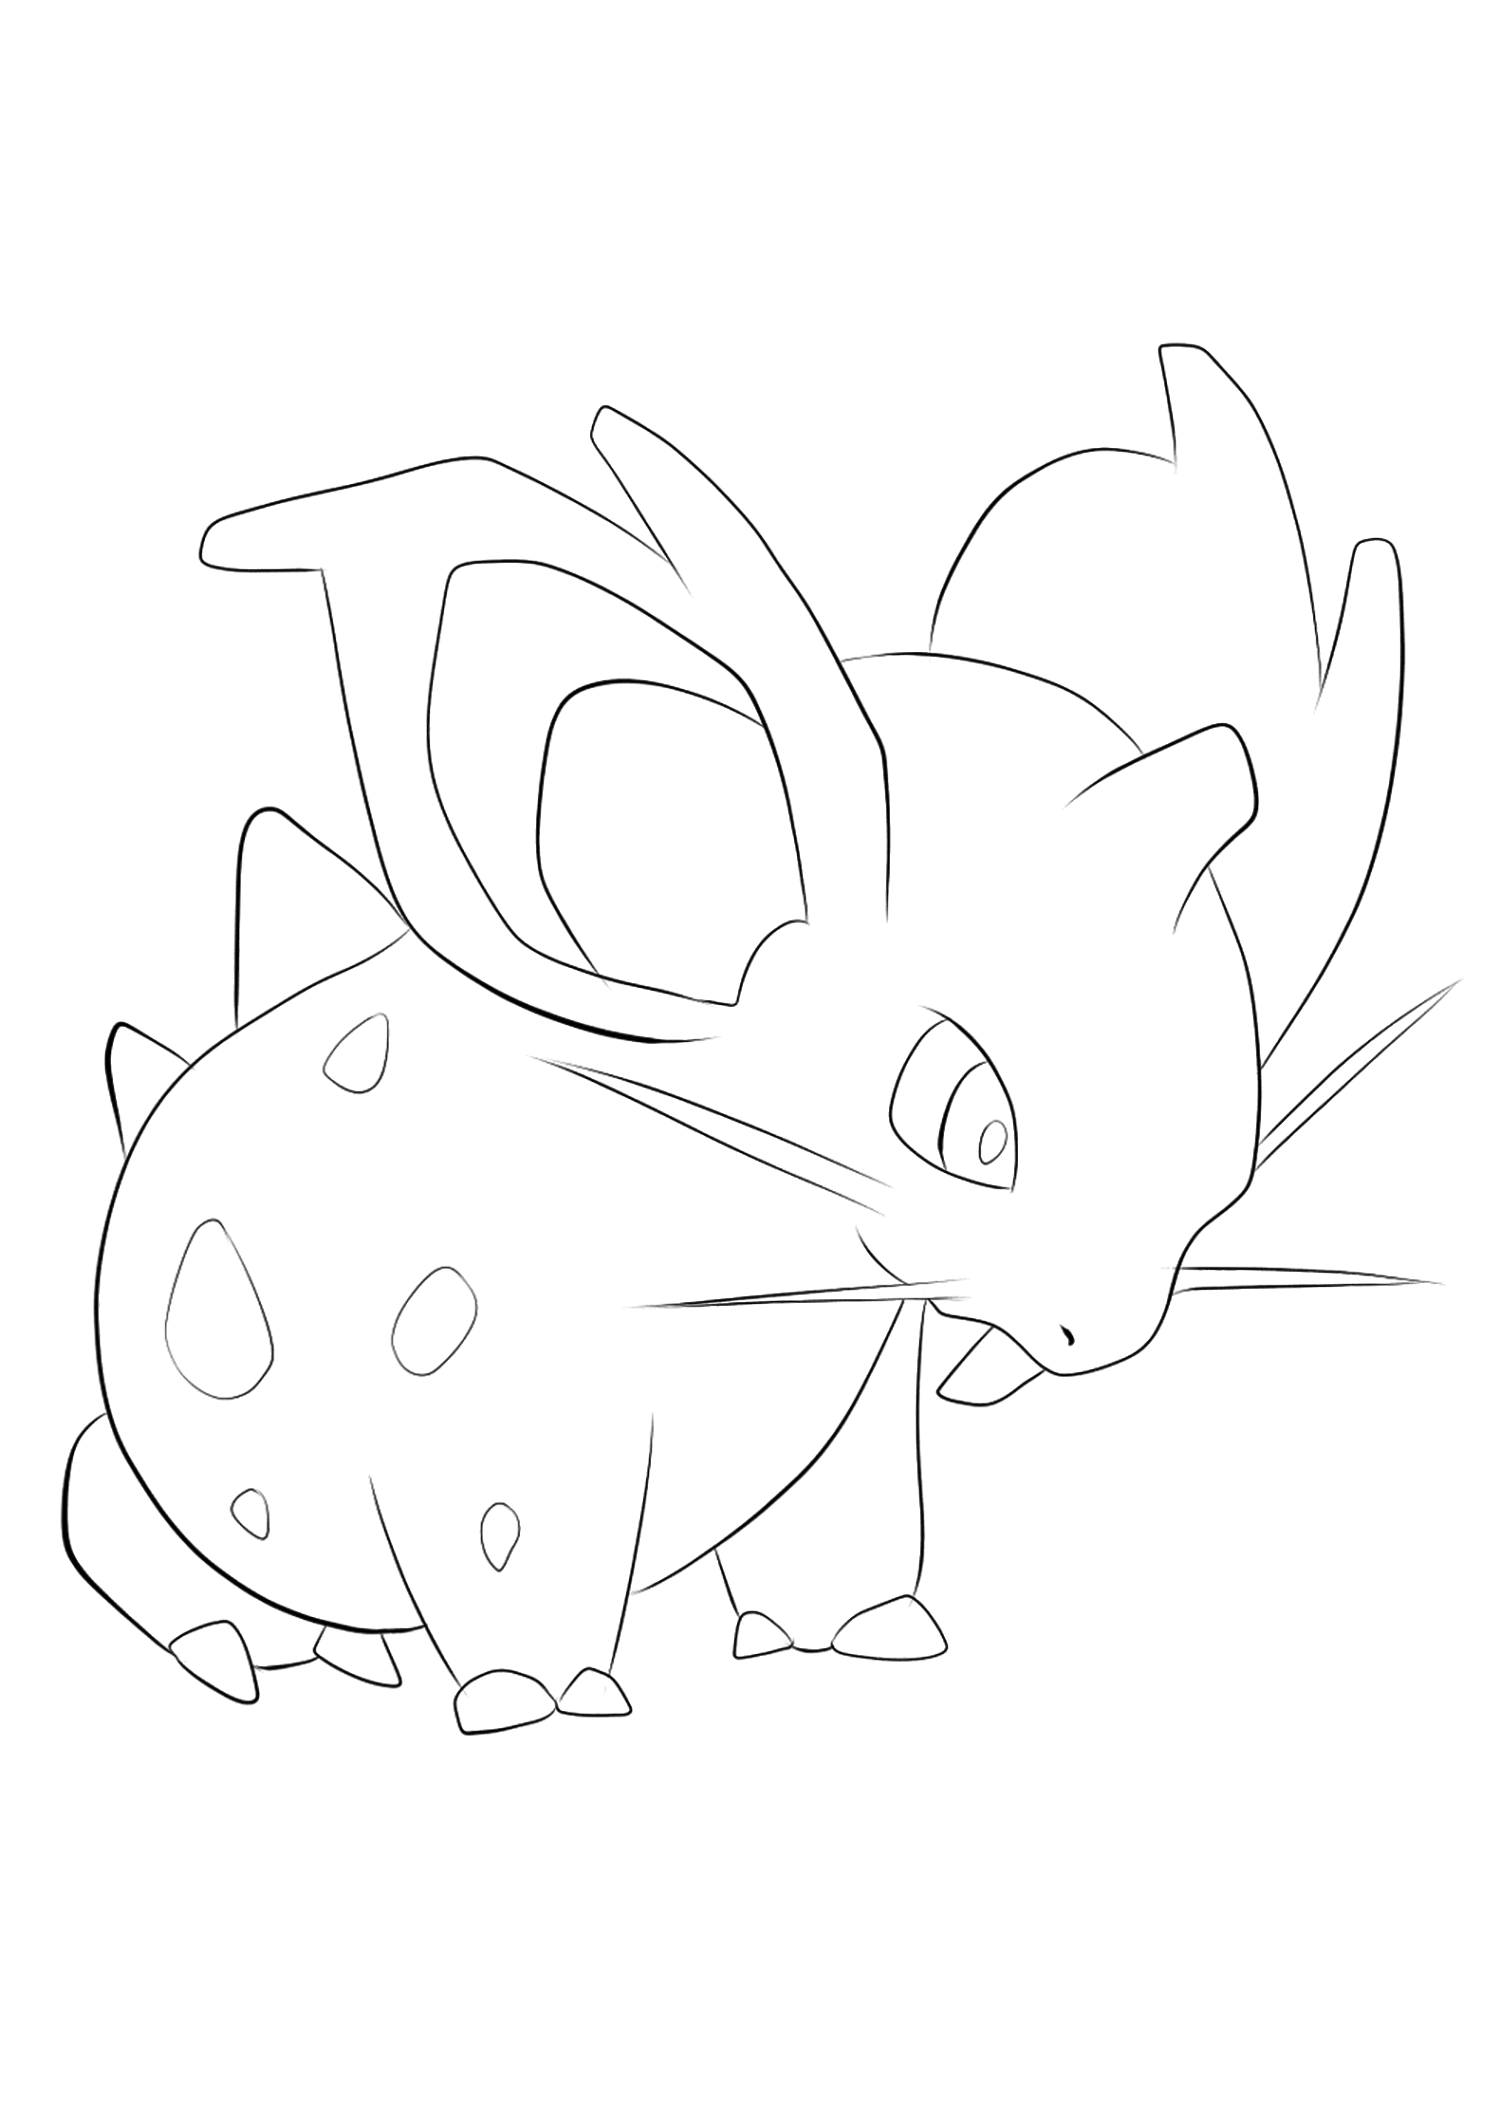 Nidoran? (No.29)Nidoran? Coloring page, Generation I Pokemon of type PoisonOriginal image credit: Pokemon linearts by Lilly Gerbil'font-size:smaller;color:gray'>Permission: All rights reserved © Pokemon company and Ken Sugimori.